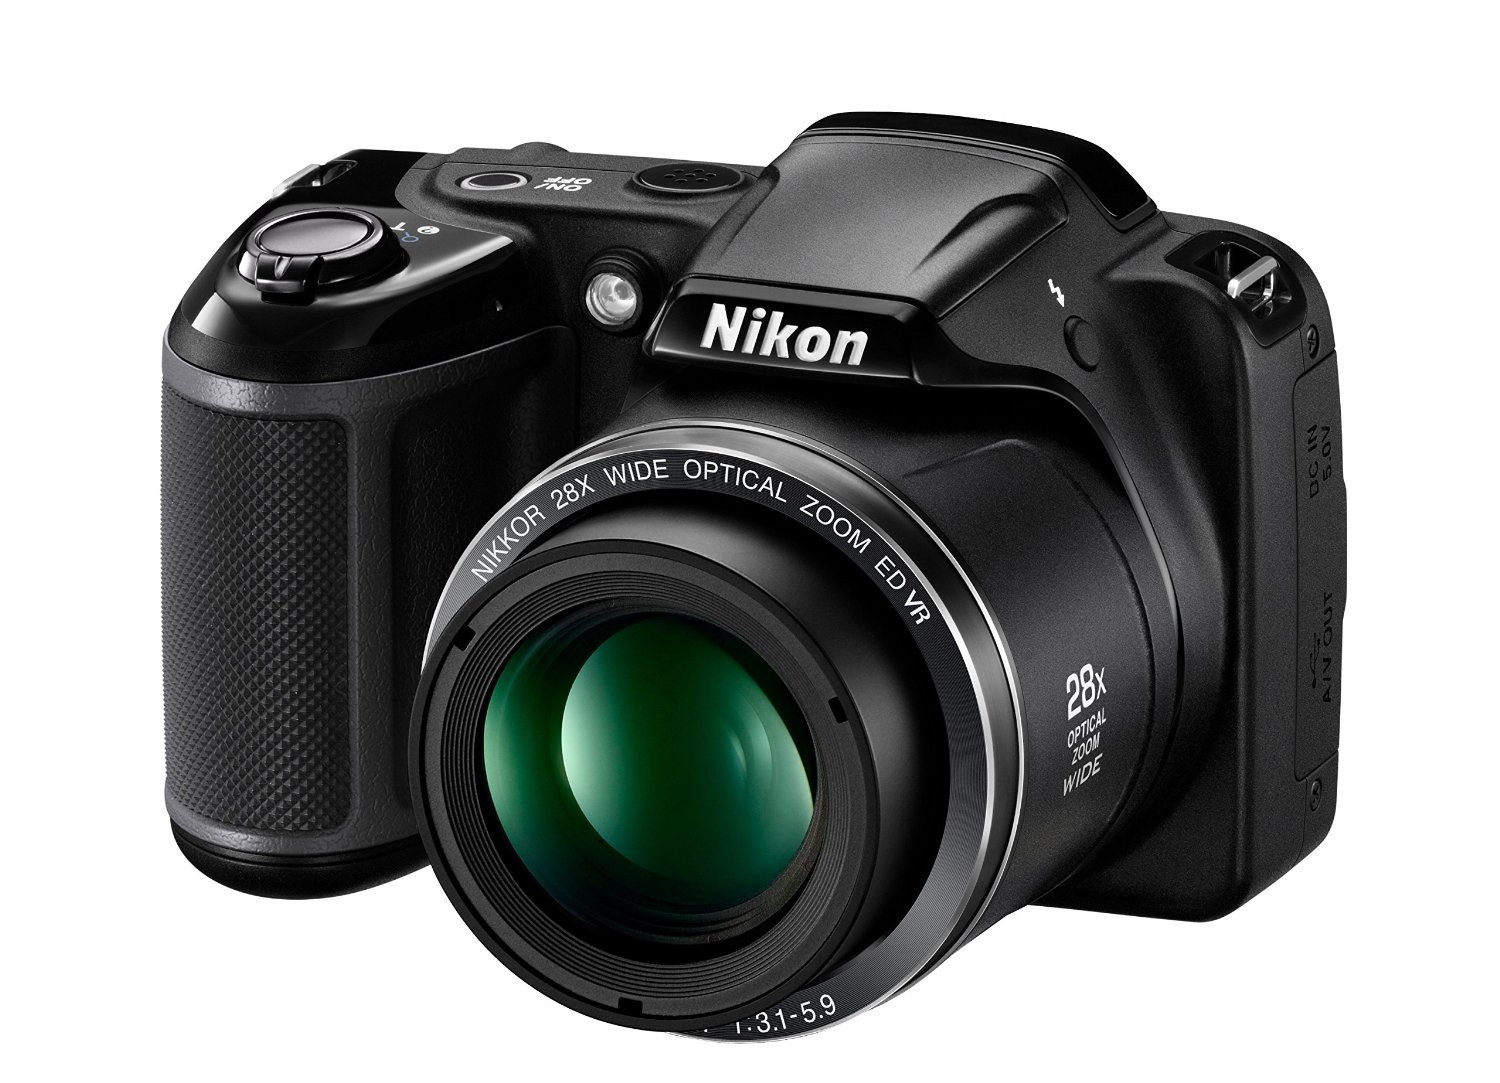 COMPACT CAMERAS, CAMERAS, PHOTO VATIKA, Nikon, Nikon Coolpix L340 20.2 MP Point And Shoot Digital Camera with 28x Optical Zoom, 16 GB Card and Came